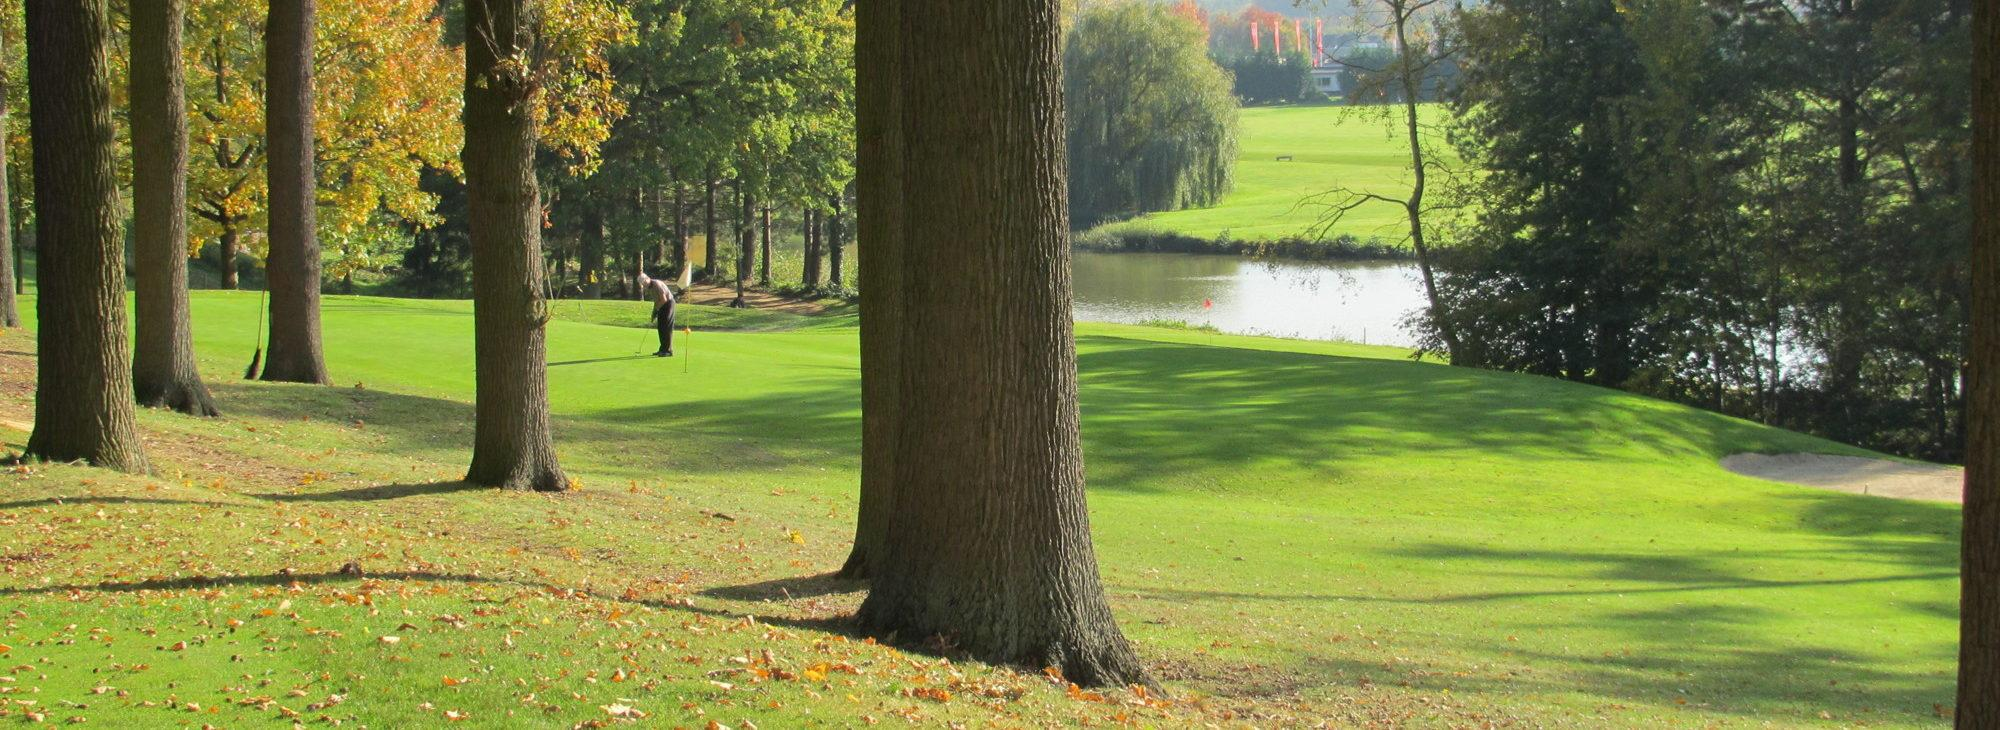 Winge Golf & Country Club has among the finest golf course in Brussels Waterloo & Mons